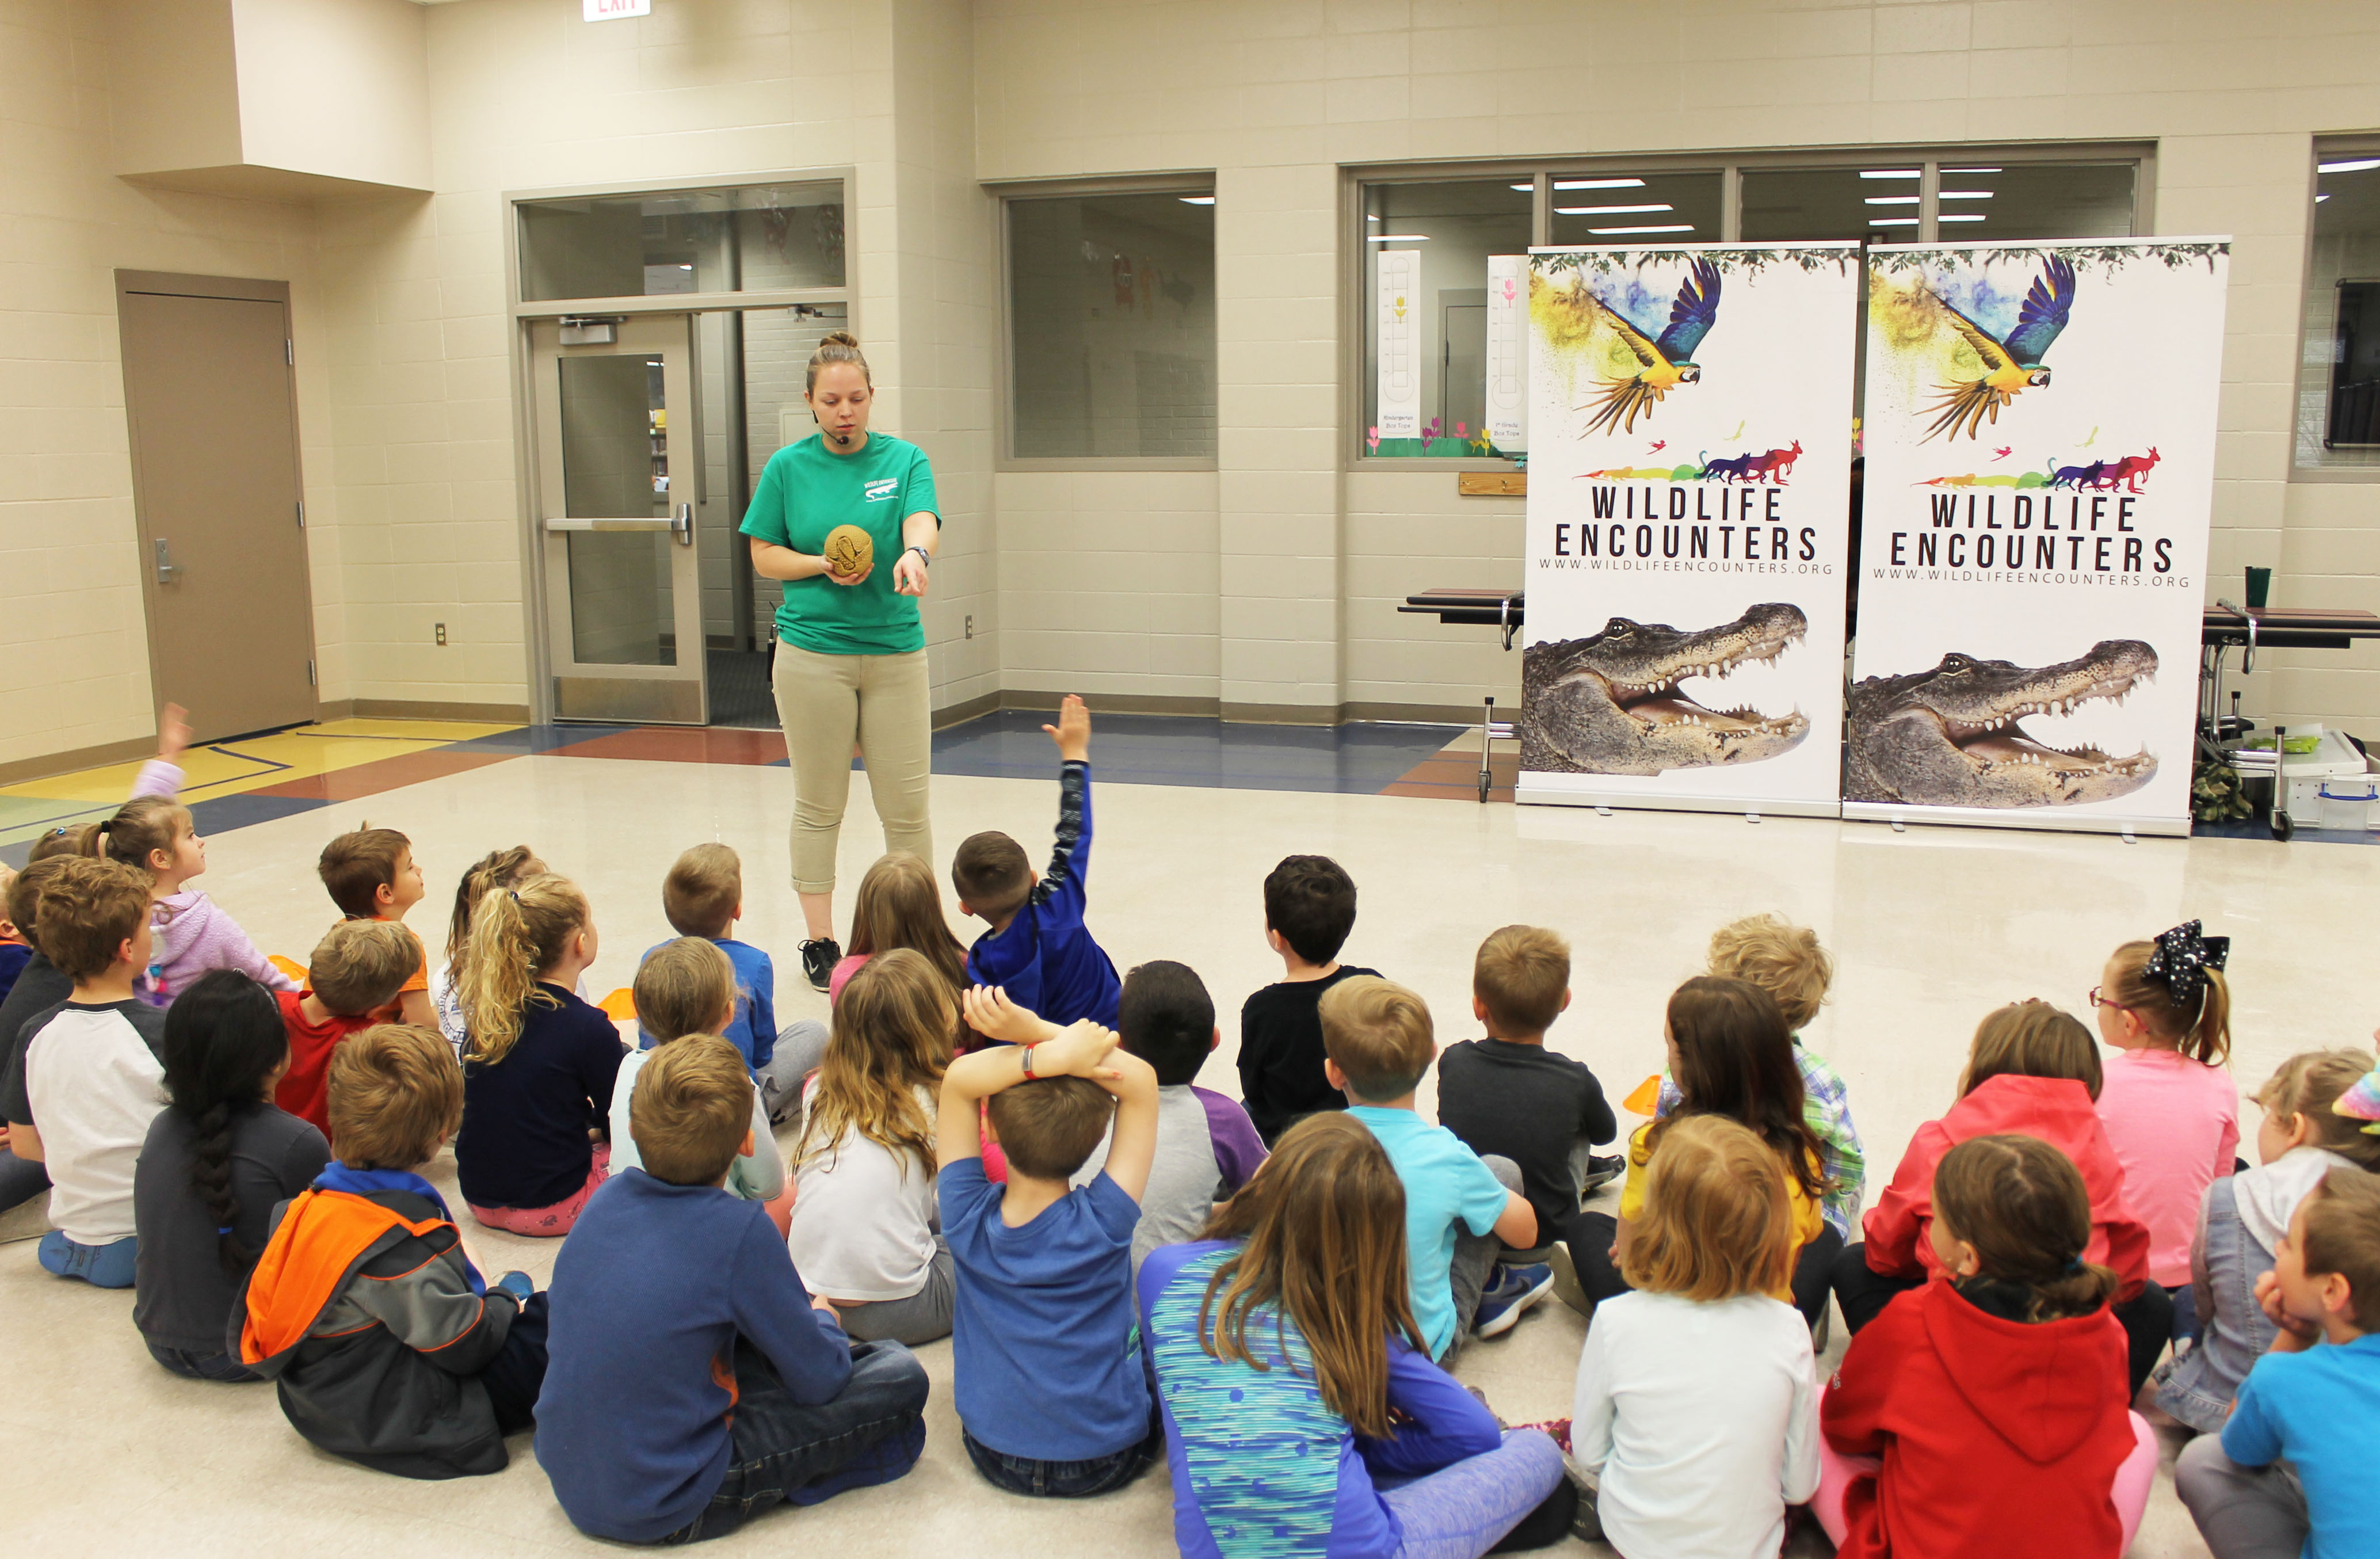 Trumble Park Elementary gets up close and personal with wildlife